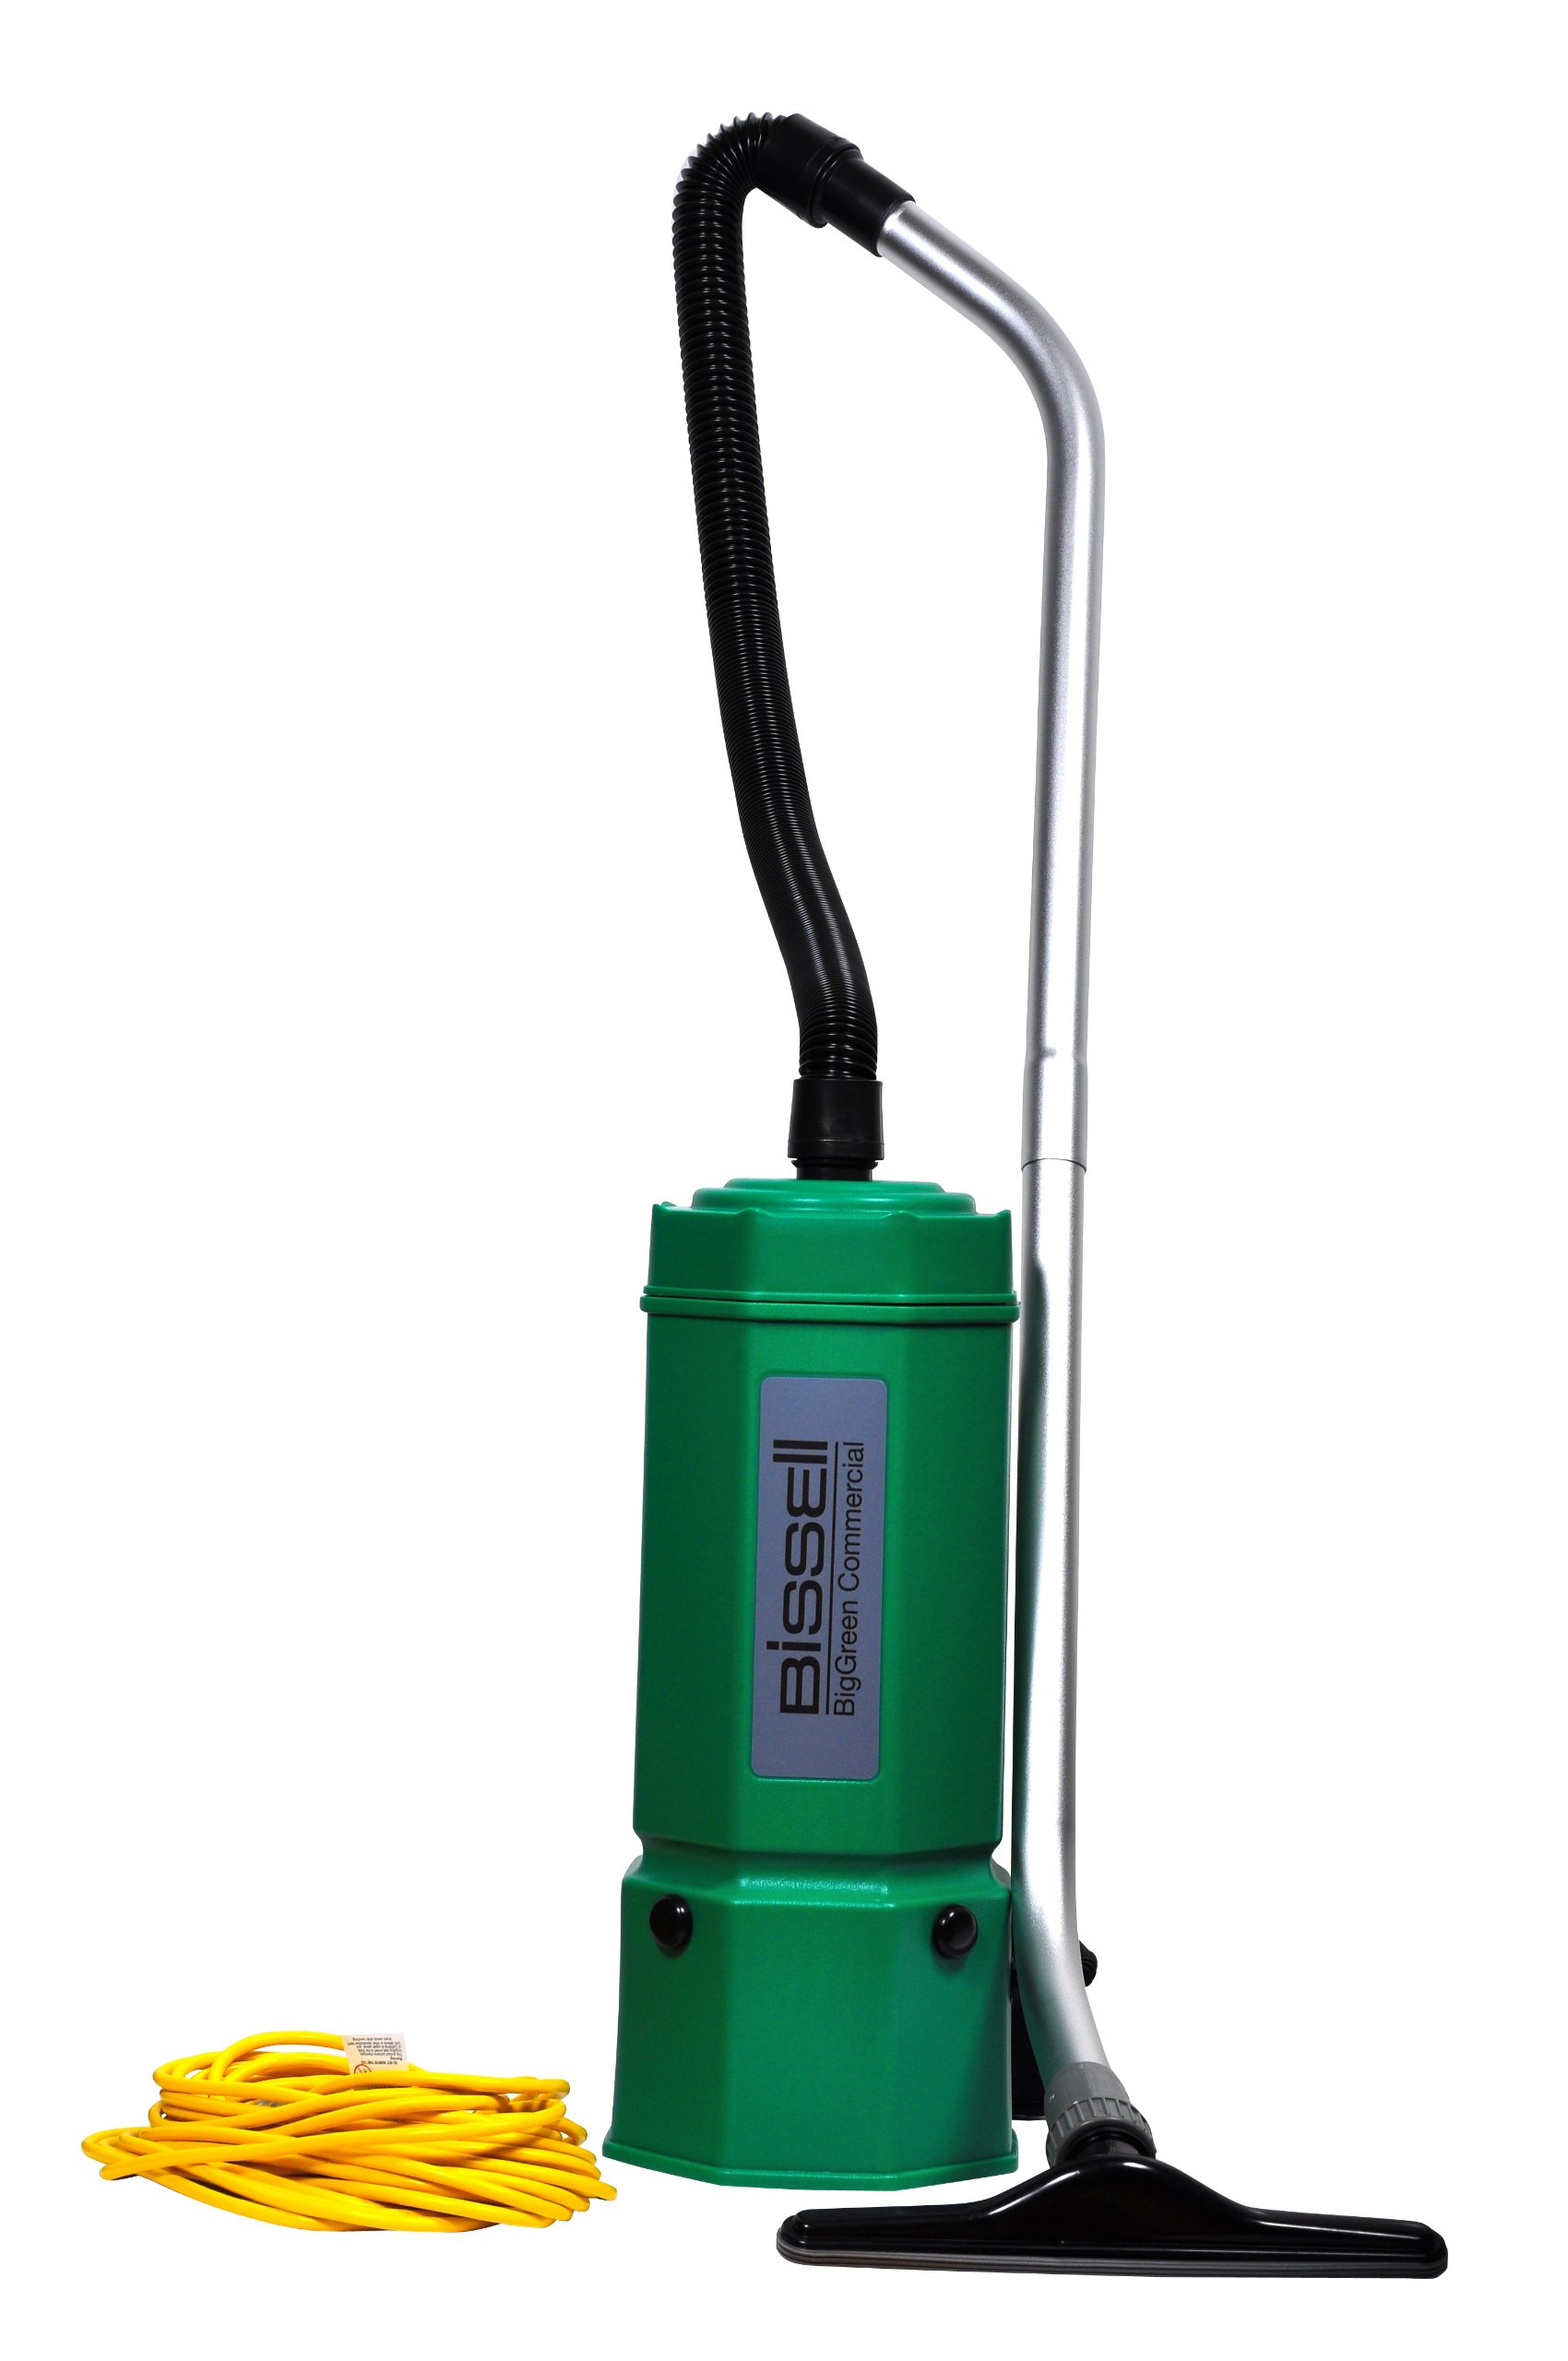 Bissell BigGreen Commercial BG1006 High Filtration Backpack Vacuum, 1080W, 22.5'' Height, 6 qt Capacity, Red by Bissell